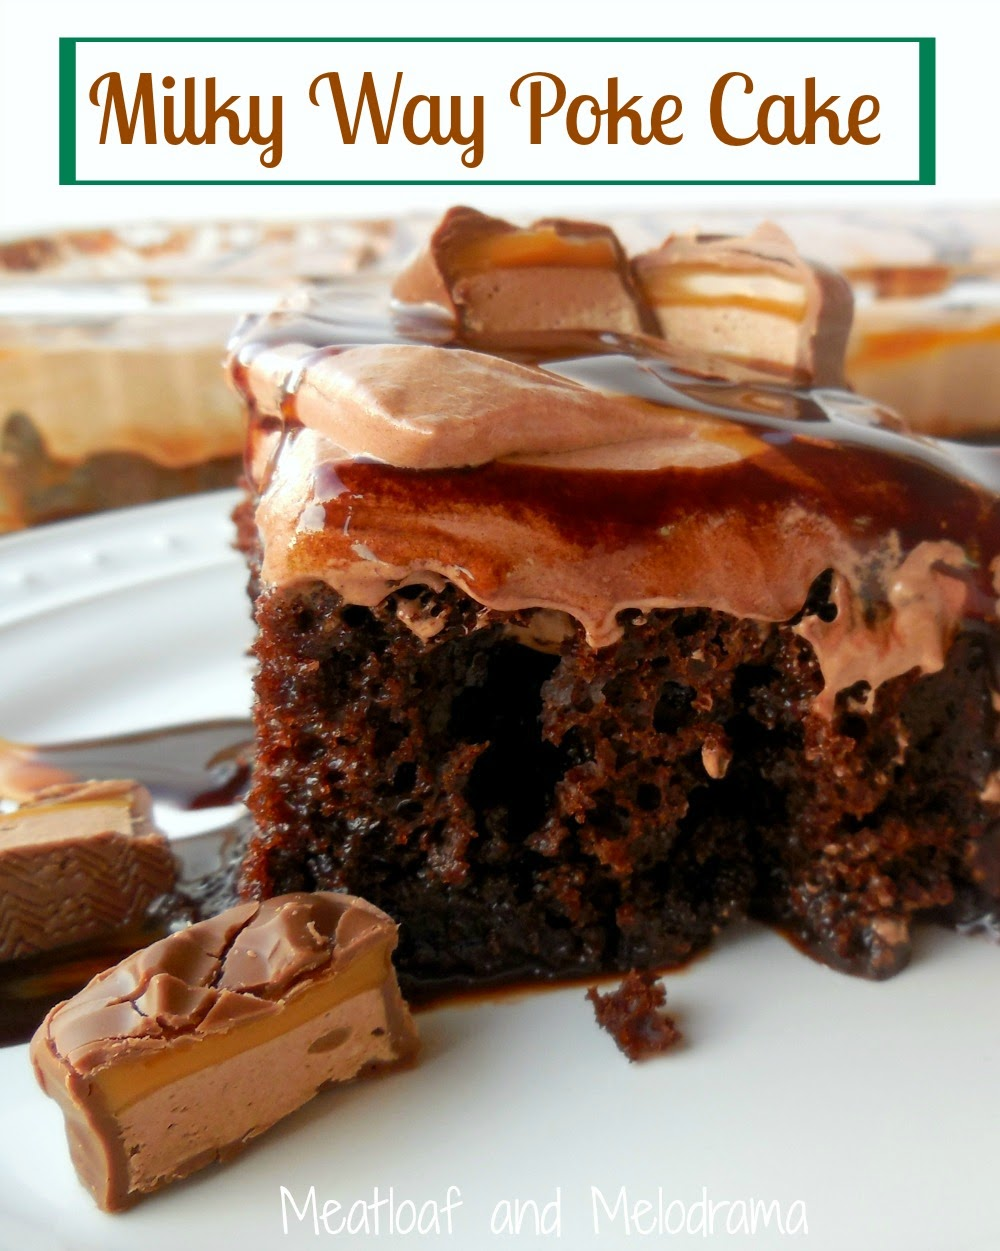 milky way poke cake with milky way bars